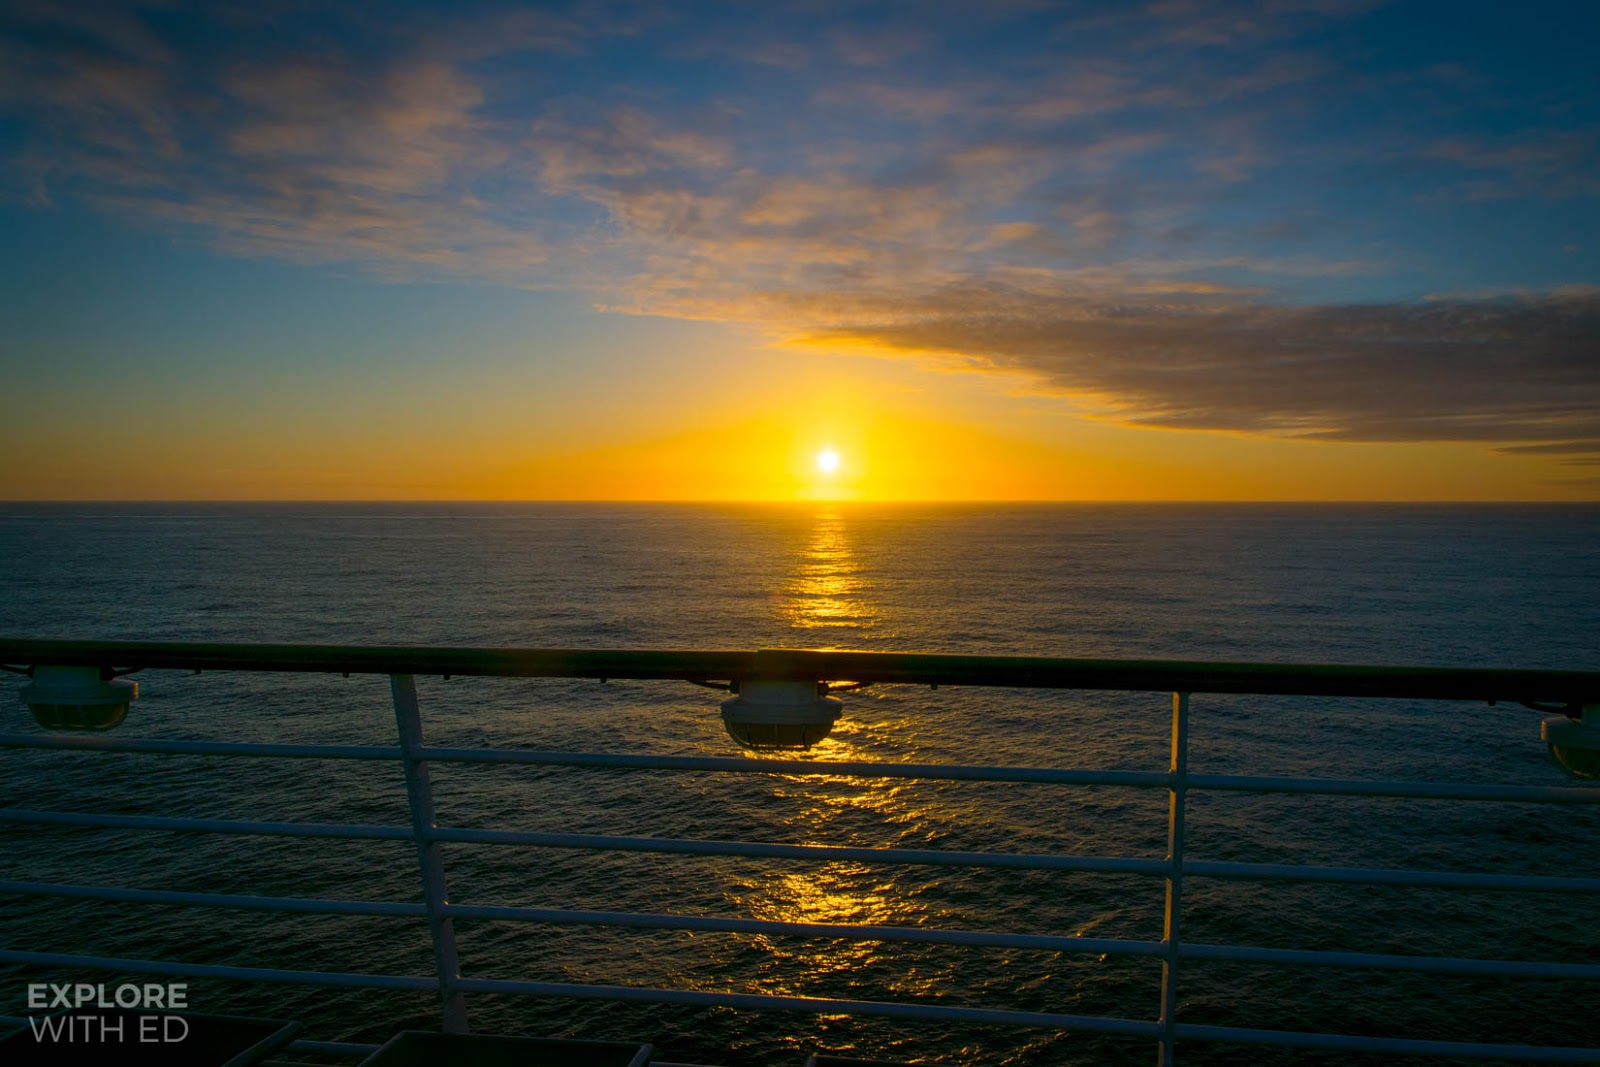 Sunset onboard a cruise ship